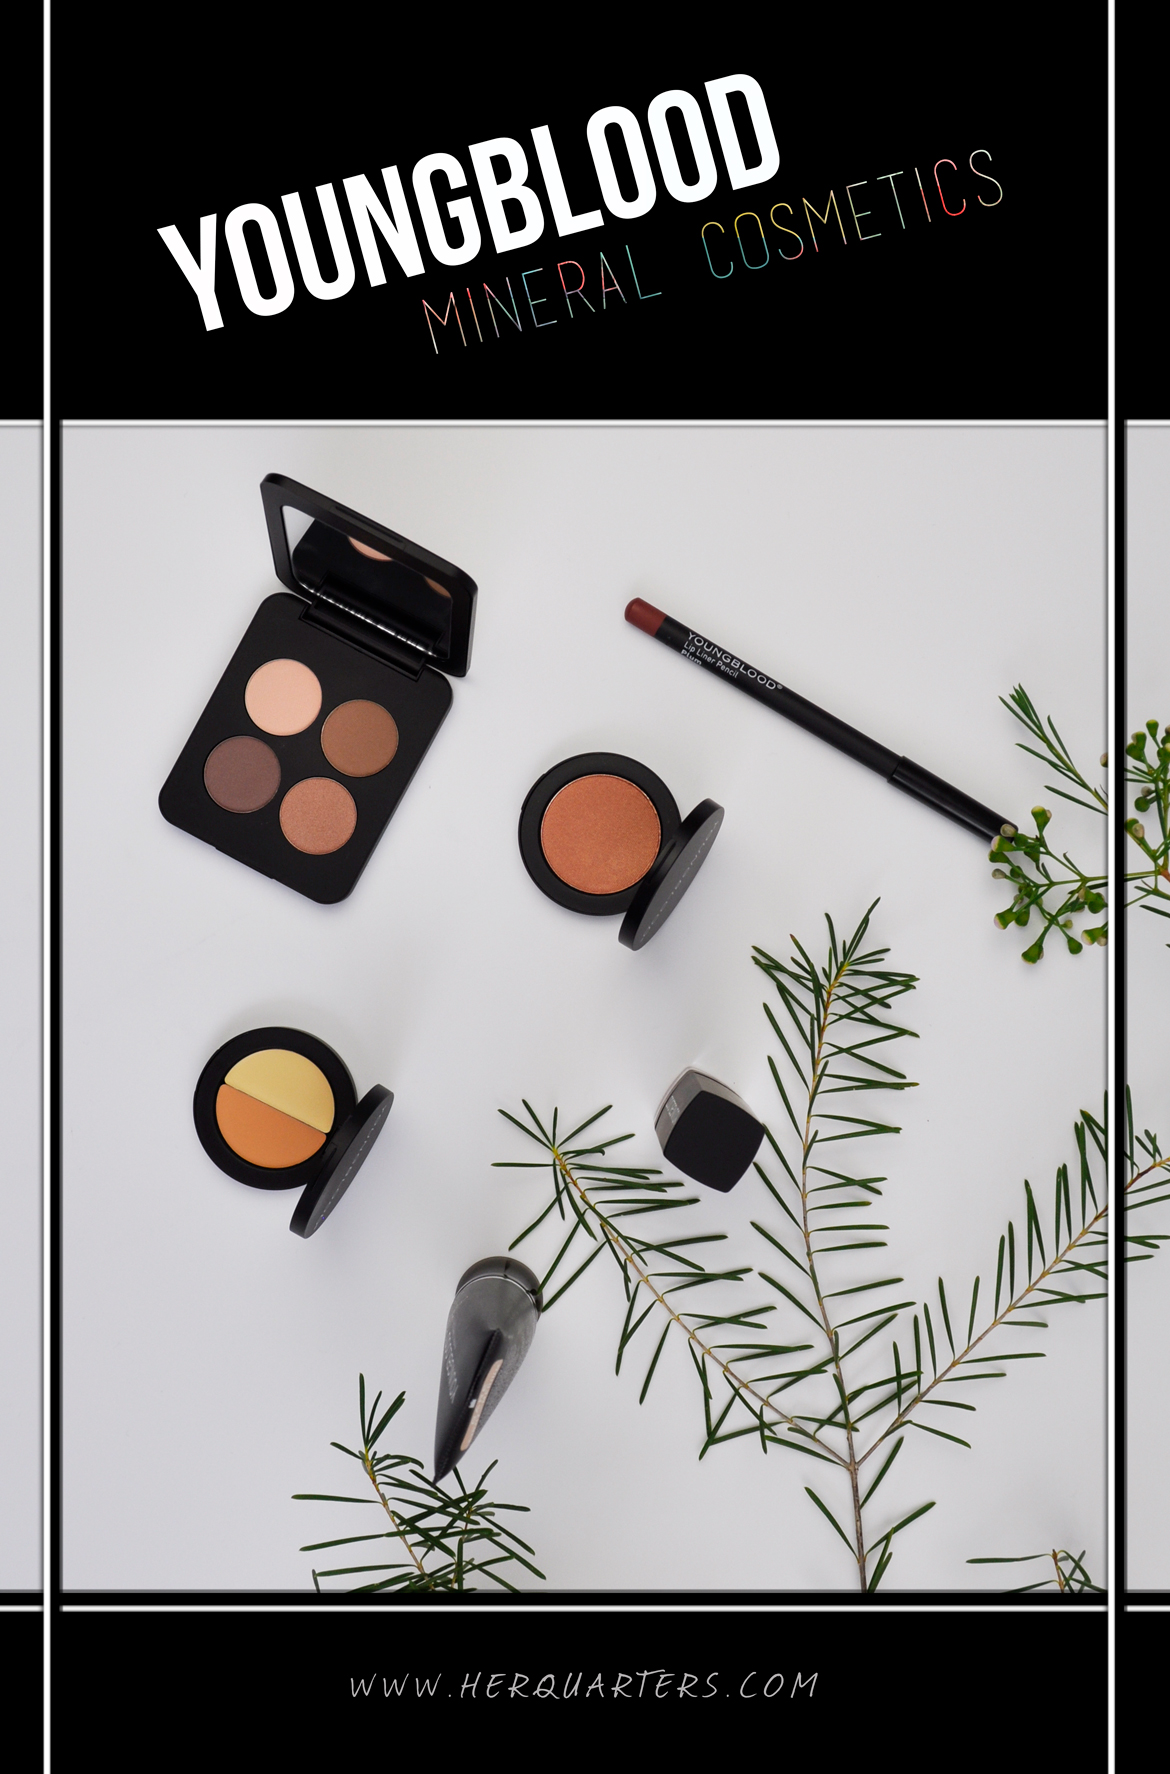 Youngblood Mineral Cosmetics Pinterest